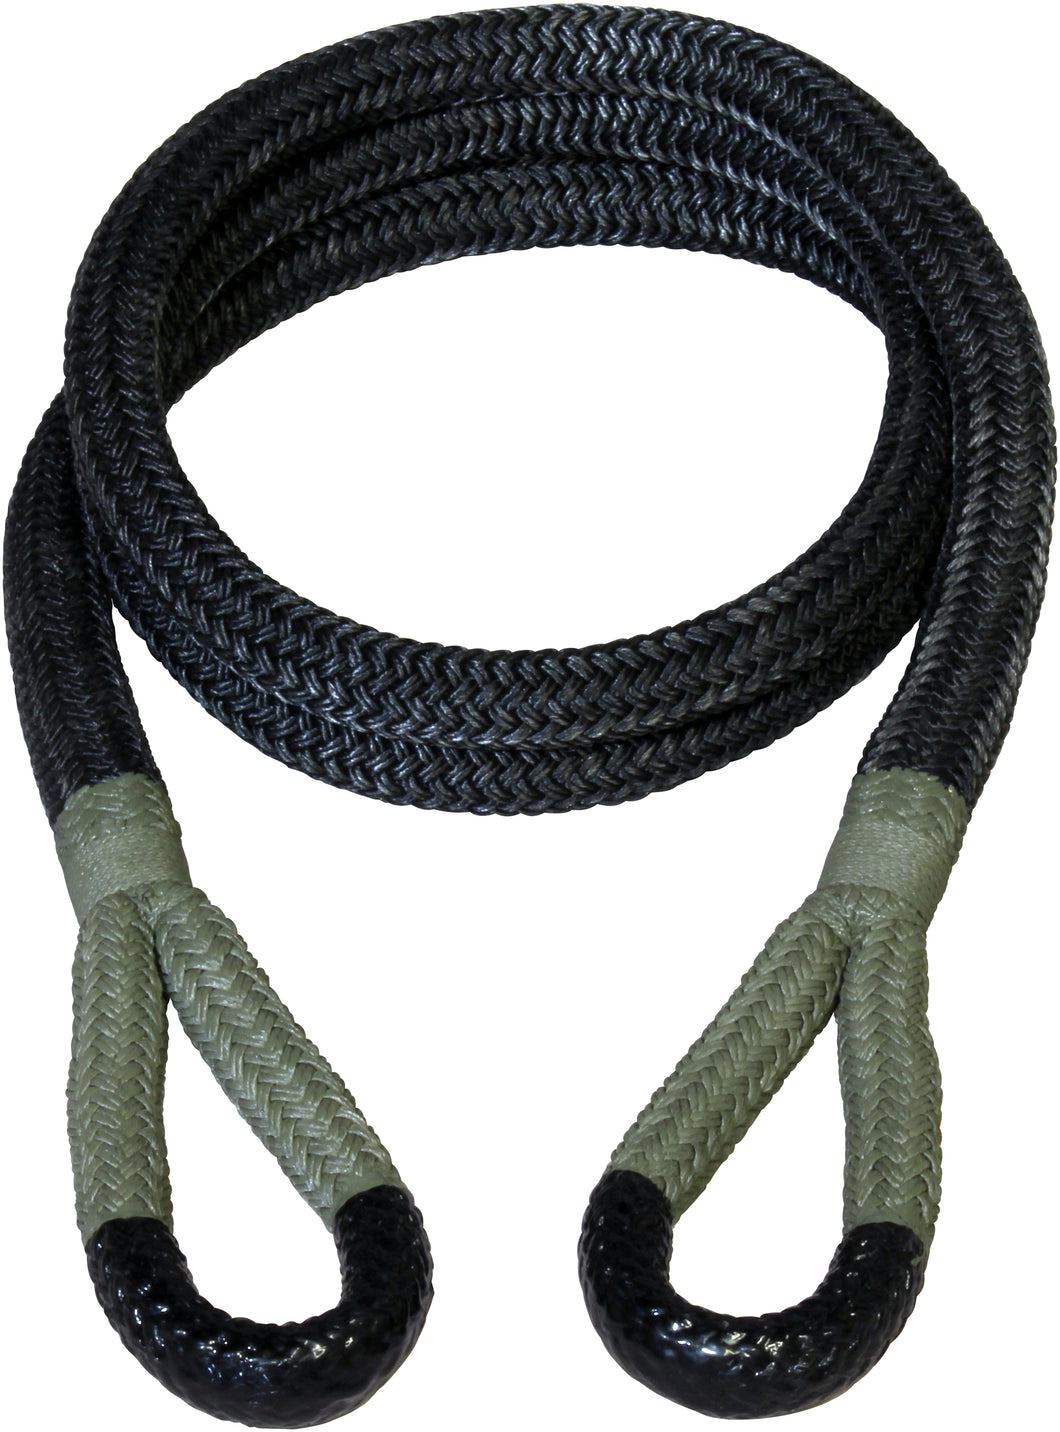 Extension Rope - 10' - 26k lbs